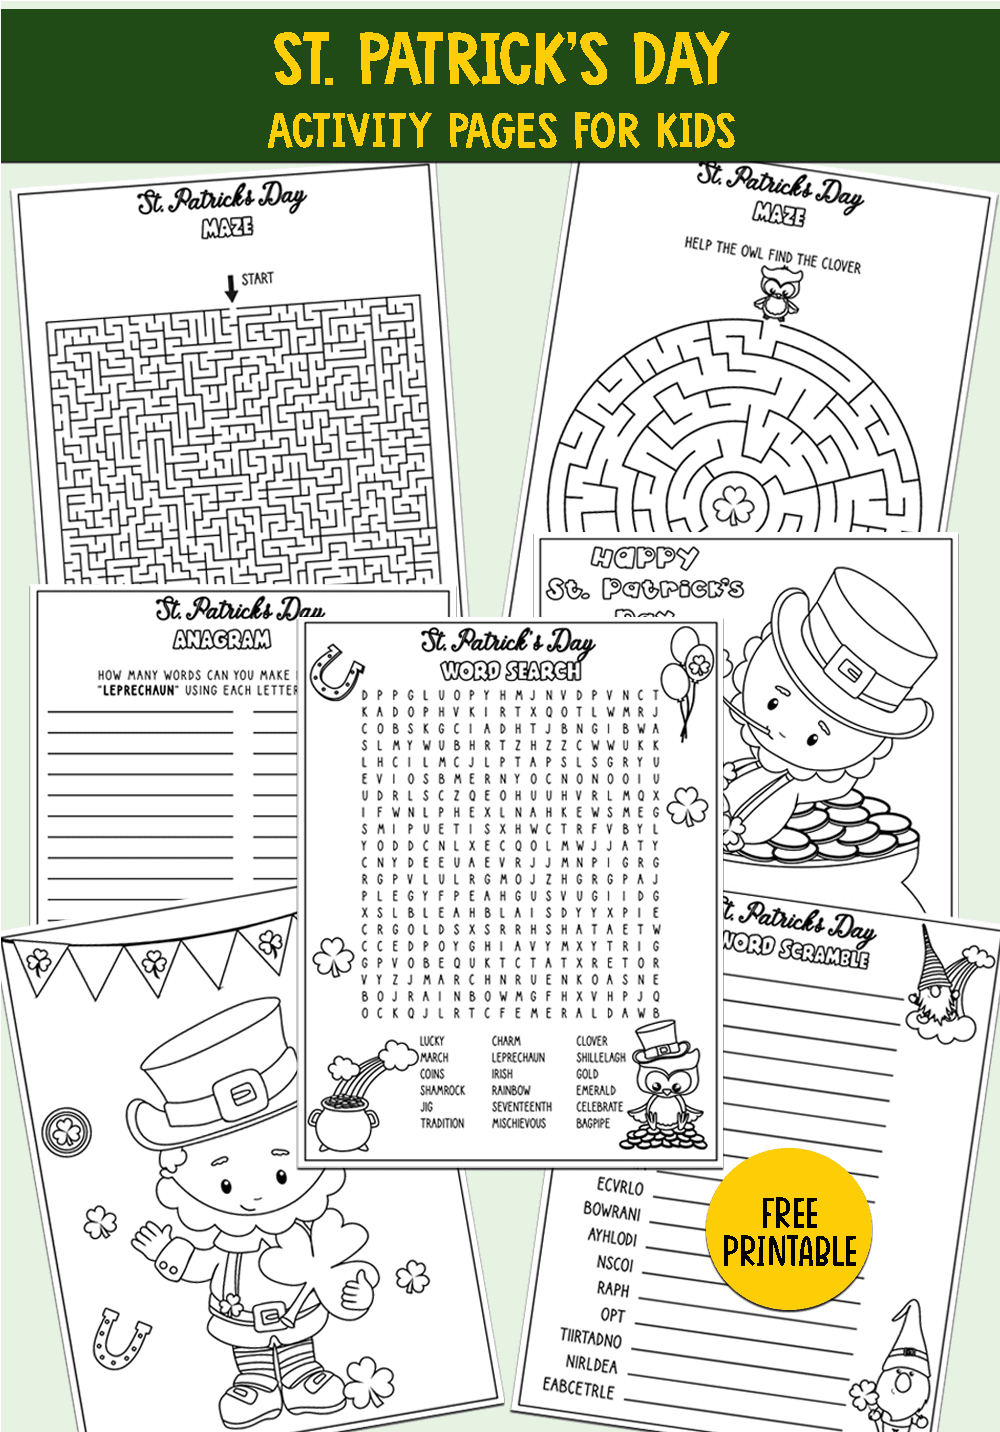 St Patrick's Day Word Search Printable Activity Pages For Kid png